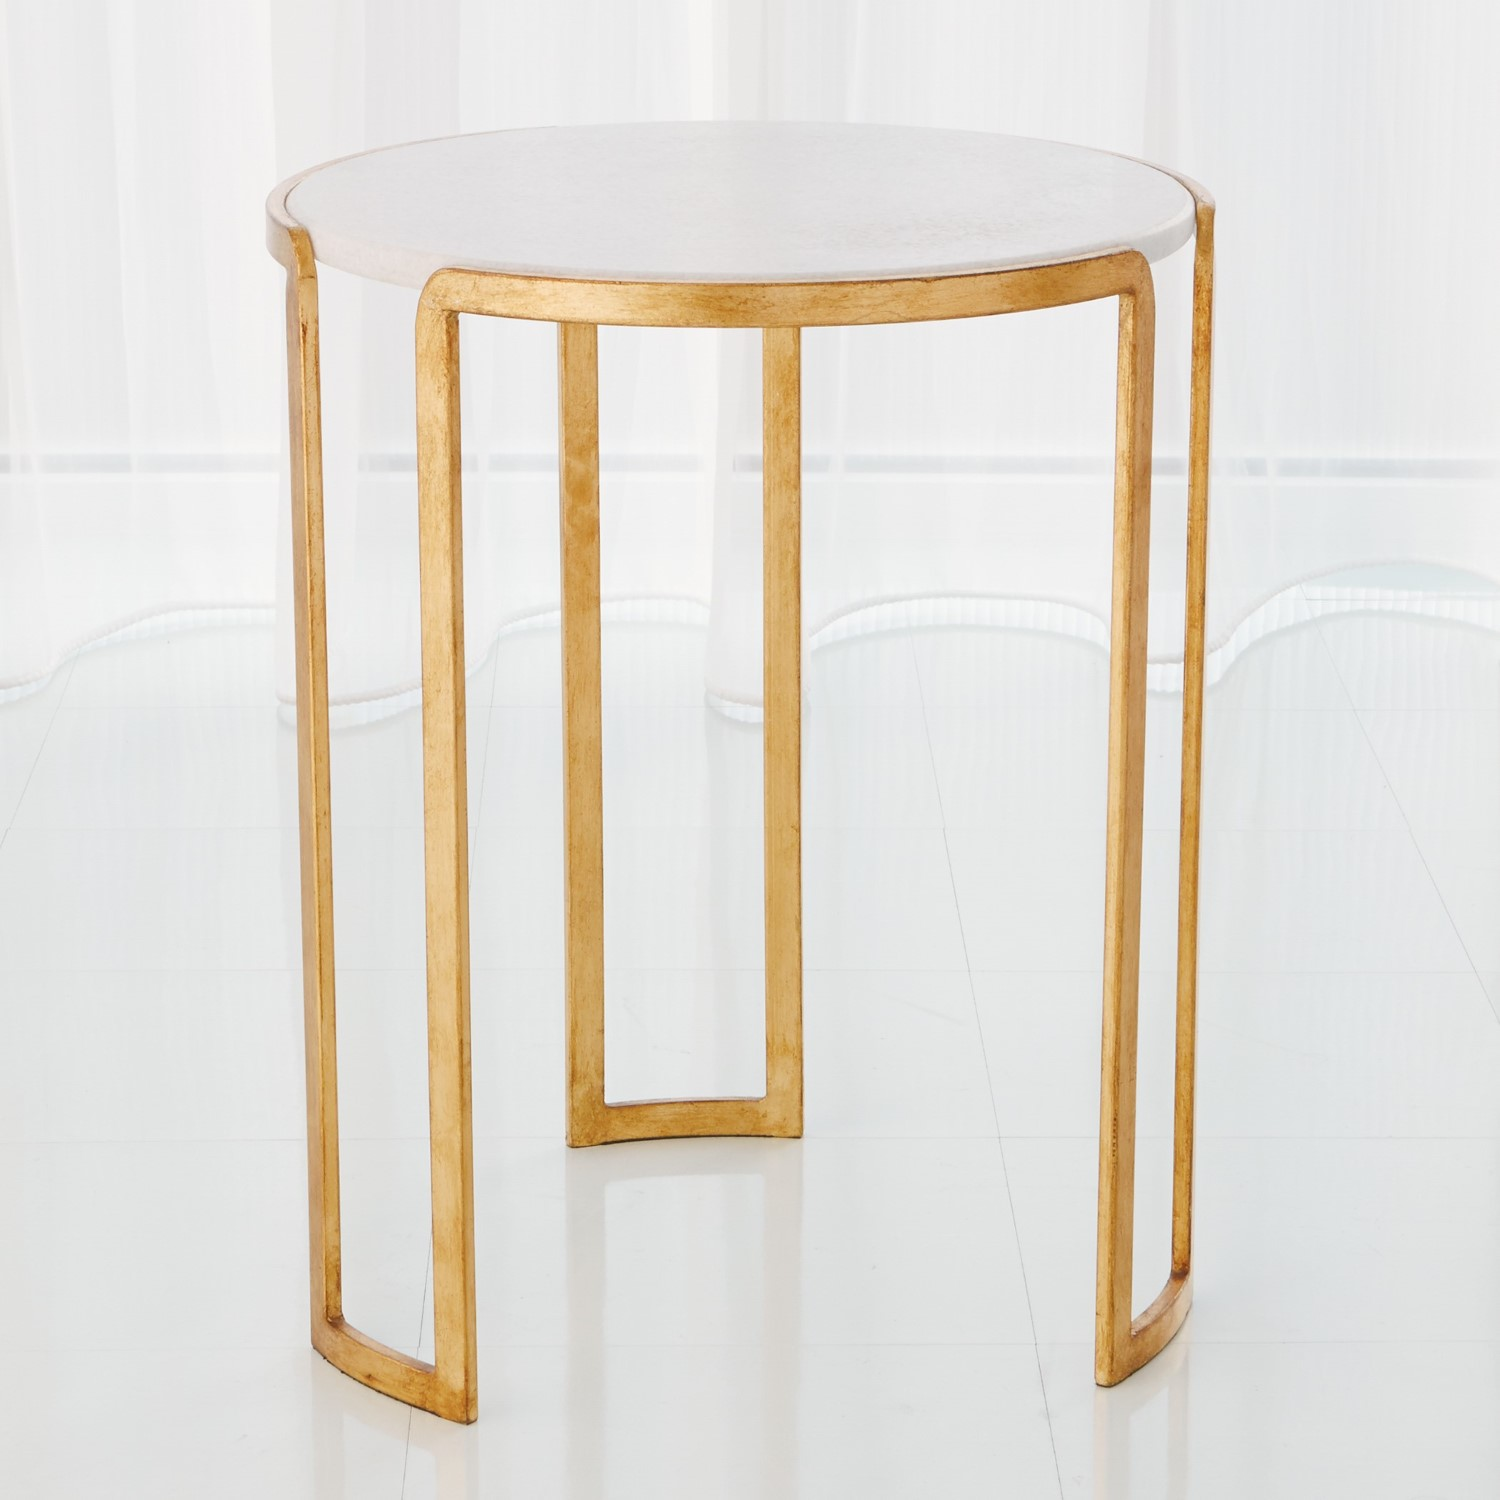 channel accent table gold leaf hammered contemporary dining chairs outdoor beverage make your own end barnwood home and furniture west elm carpets red room bedroom decor ideas